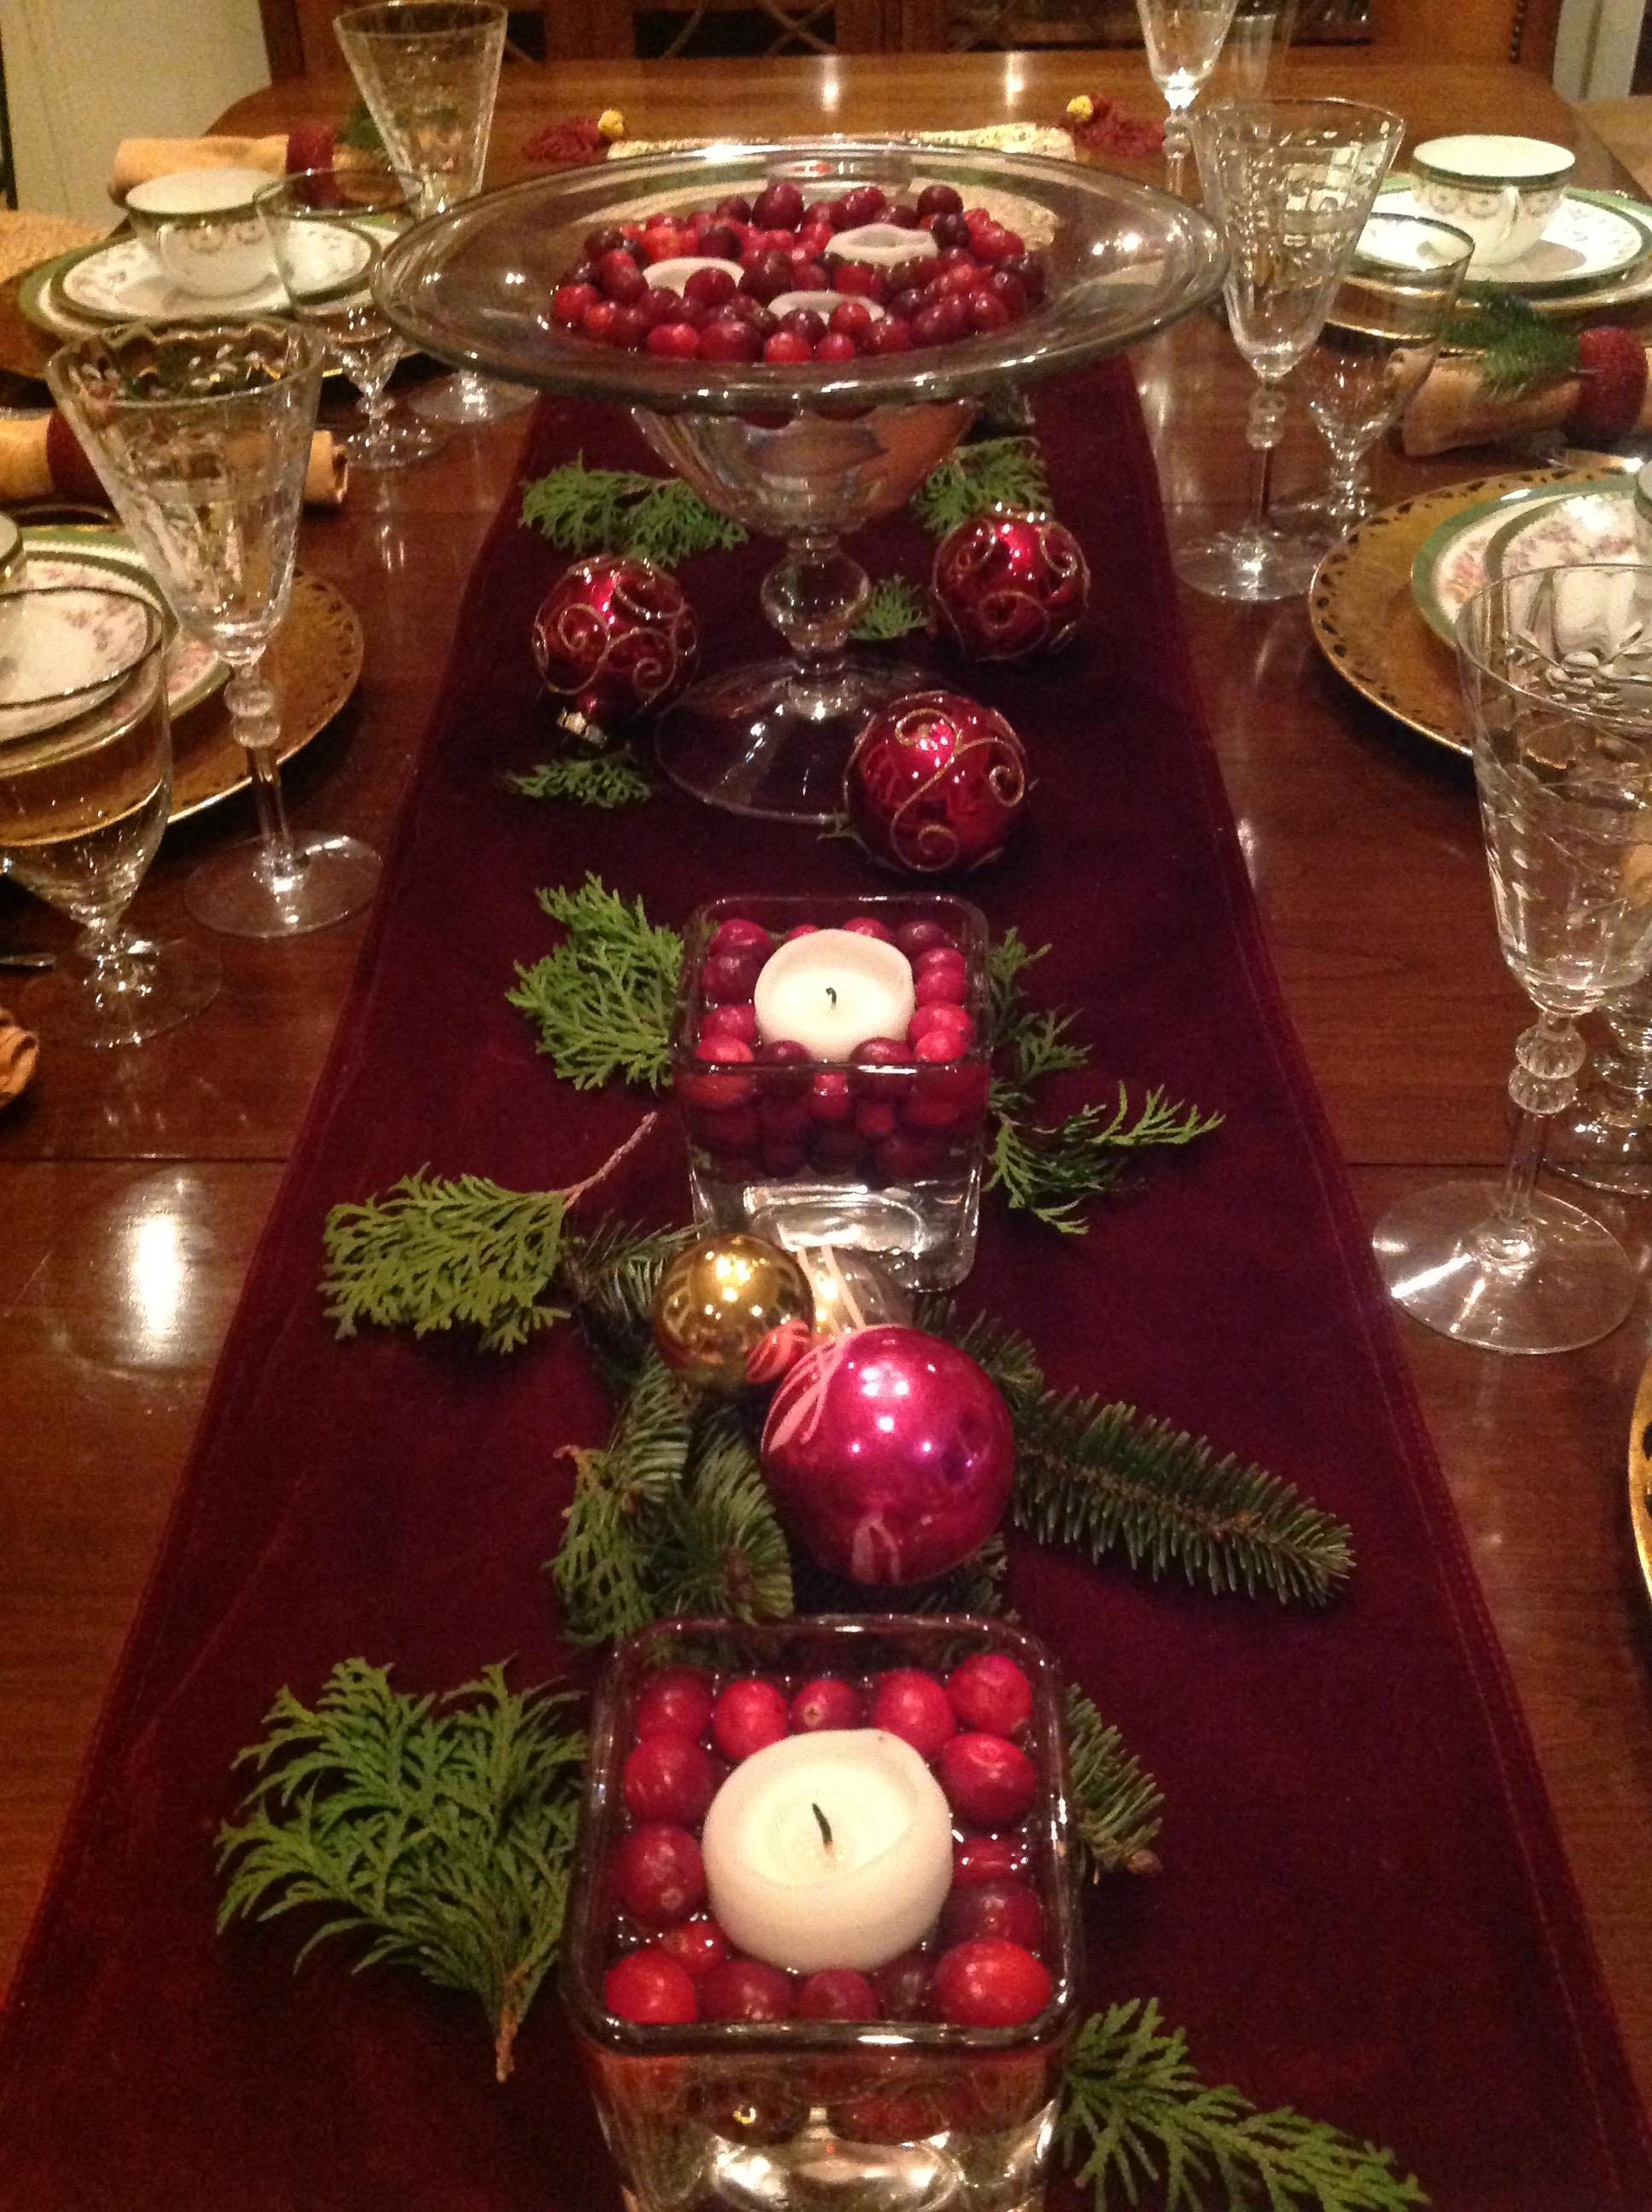 image ... & Elegant Christmas Table Setting | French Gardener Dishes